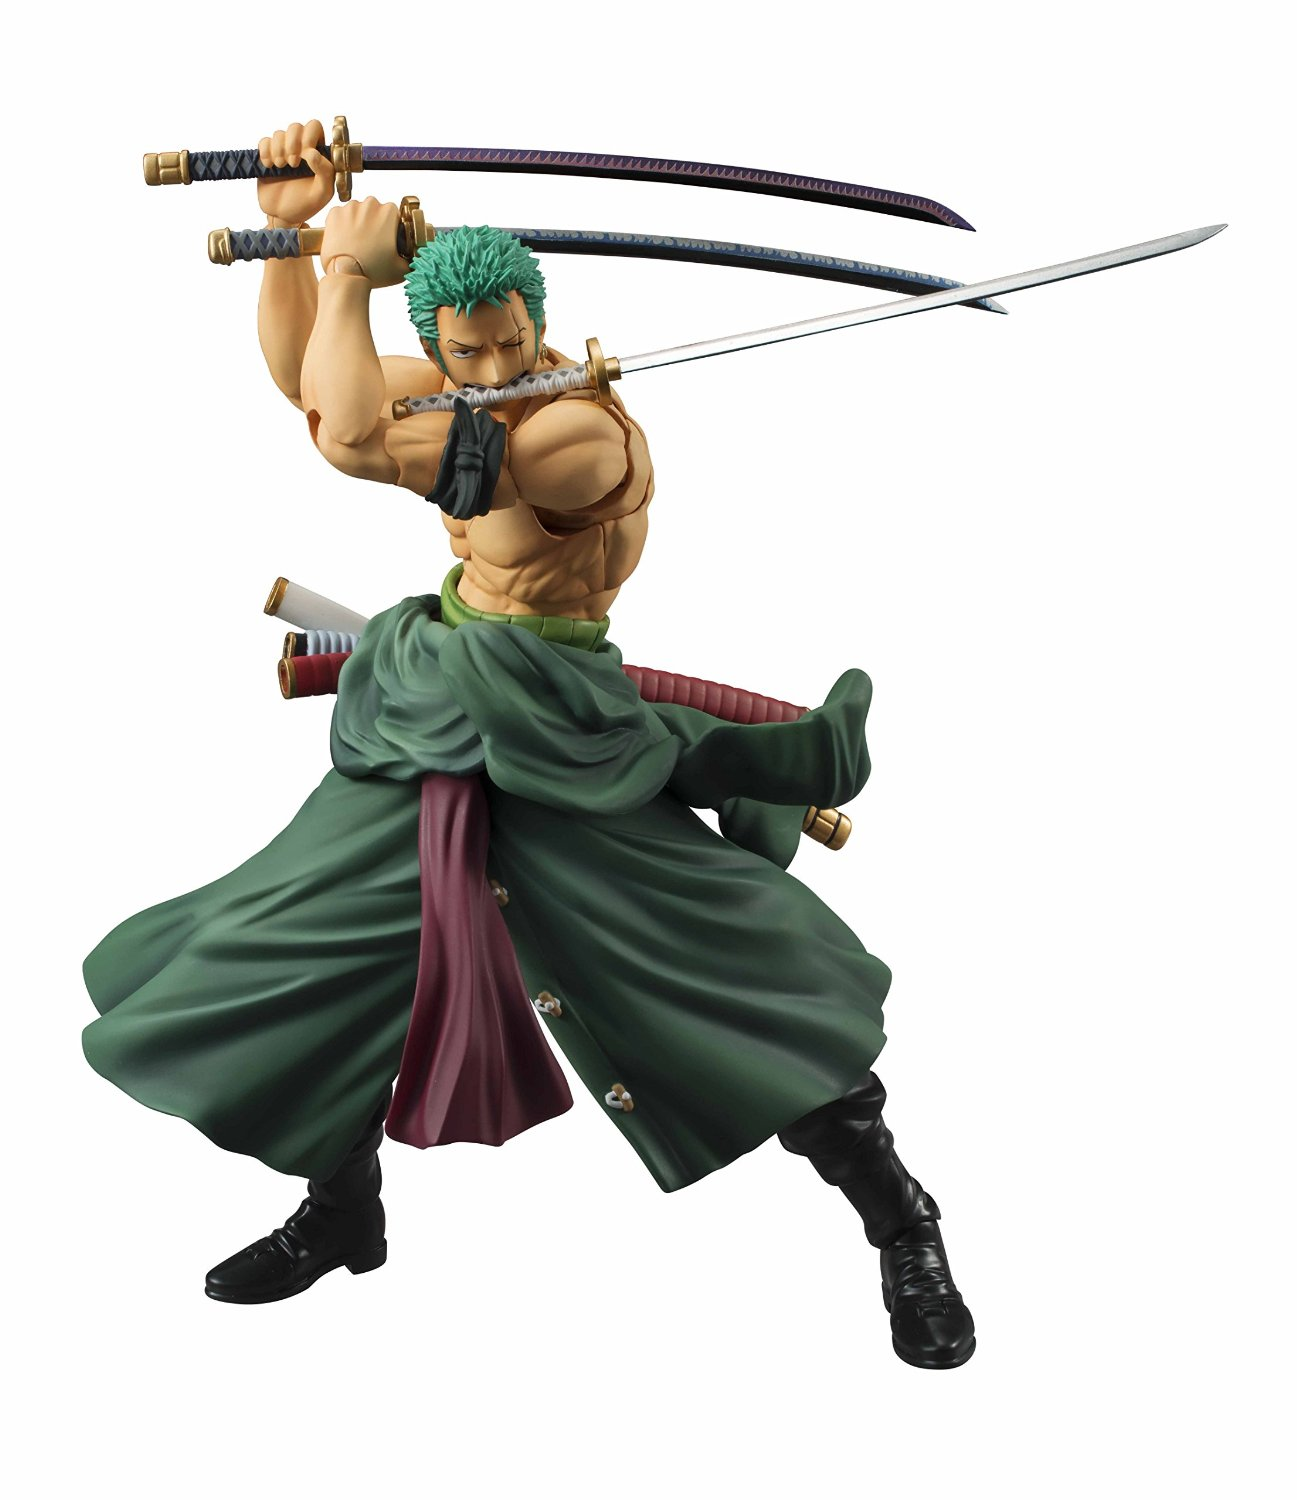 Megahouse One Piece Roronoa Zoro Variable Action Hero